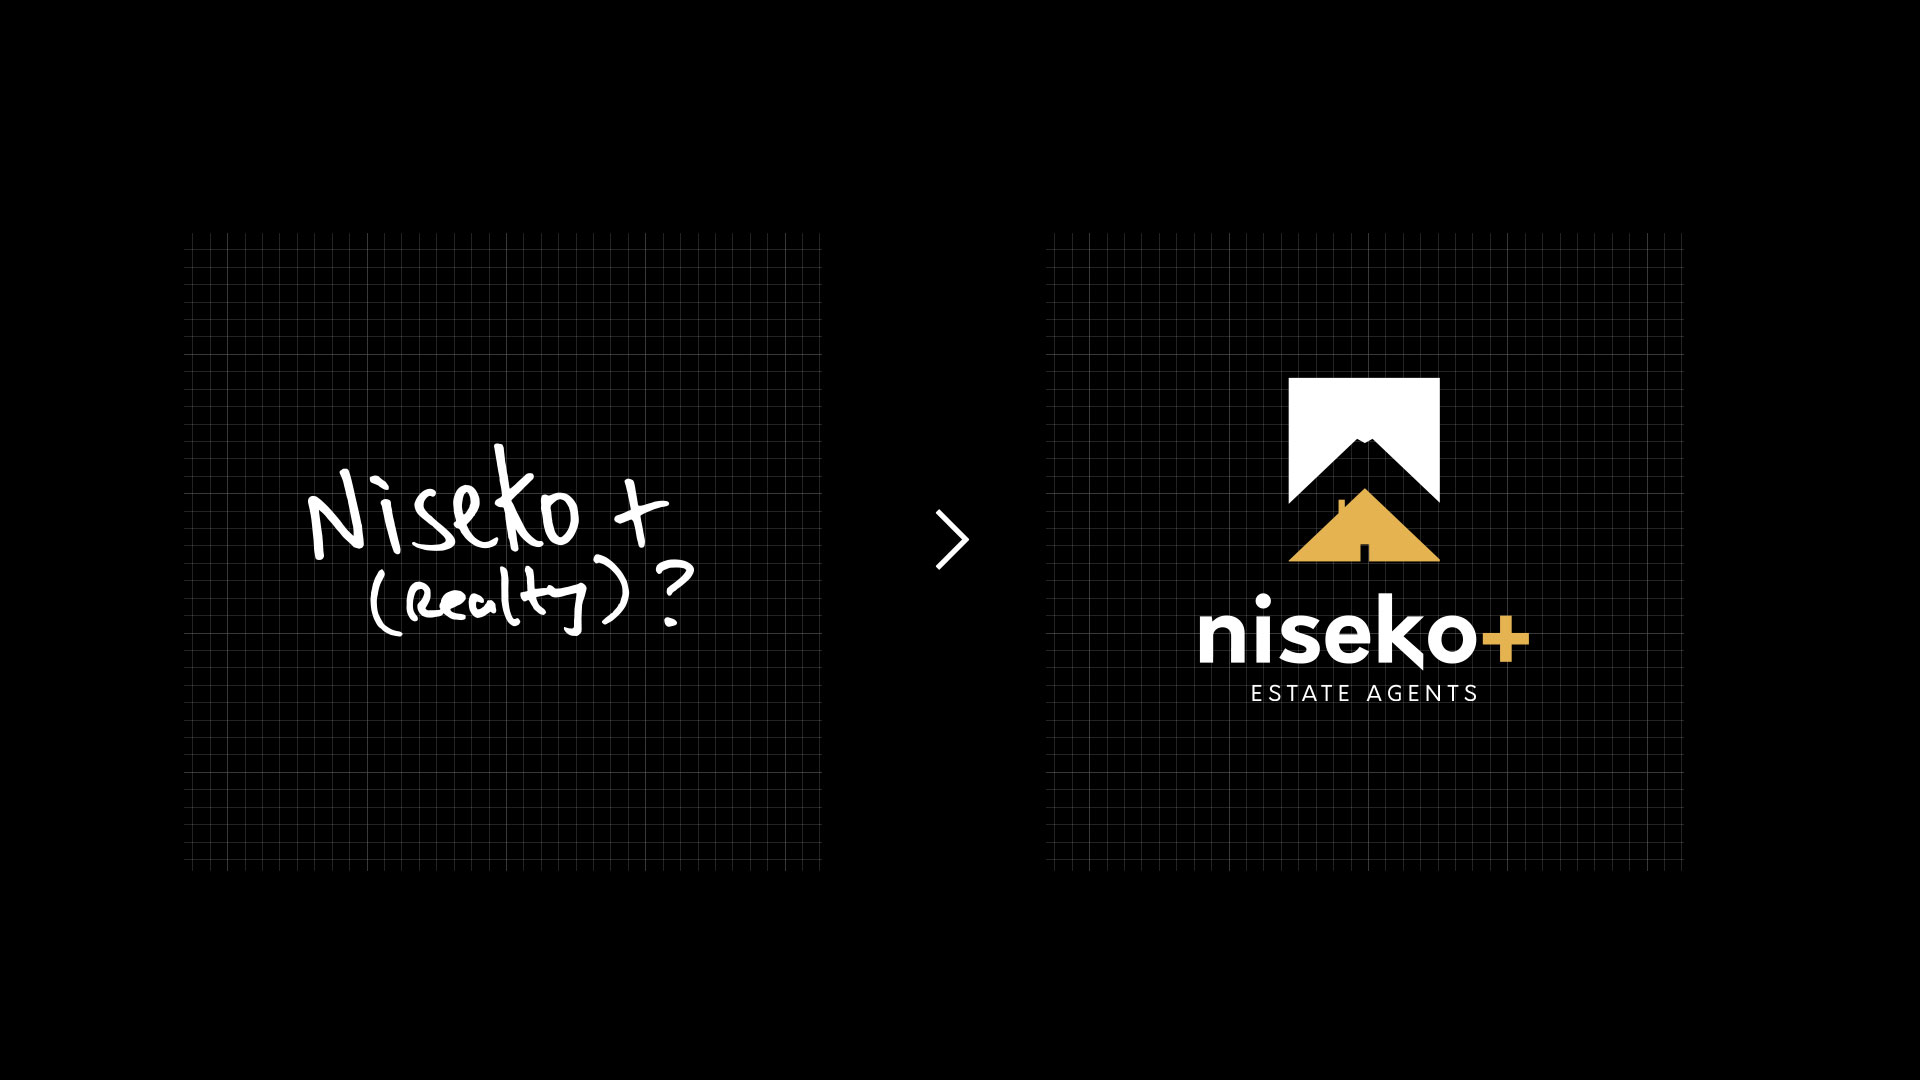 a brand and logo usually starts off with a simple idea before evolving into a beautiful and memorable logo mark as shown in this example for Niseko+ Estate Agents